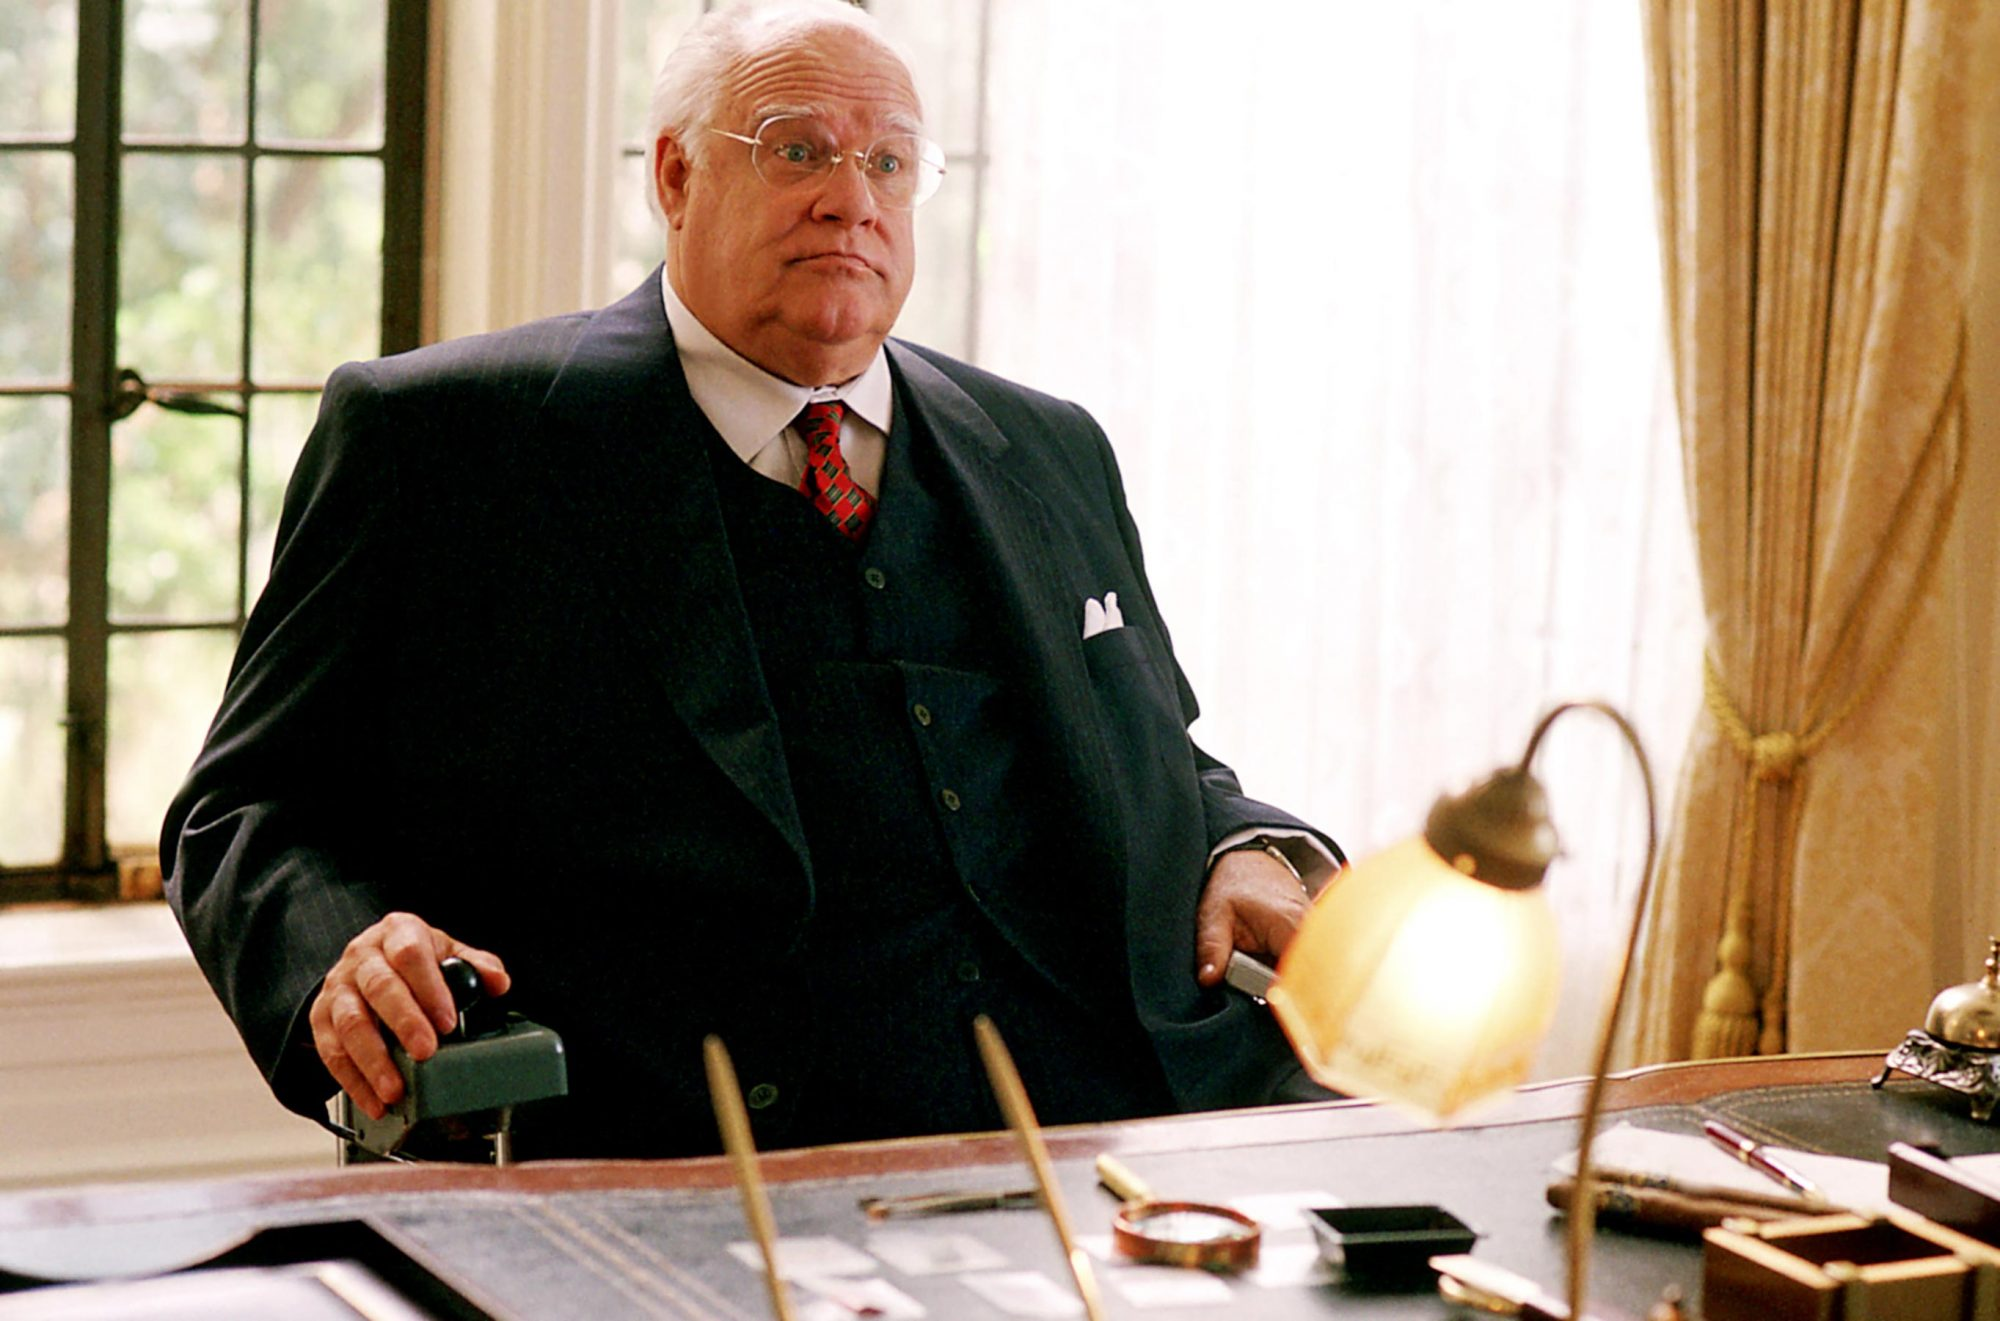 THE BIG LEBOWSKI, David Huddleston, 1998, (c) Gramercy Pictures/courtesy Everett Collection